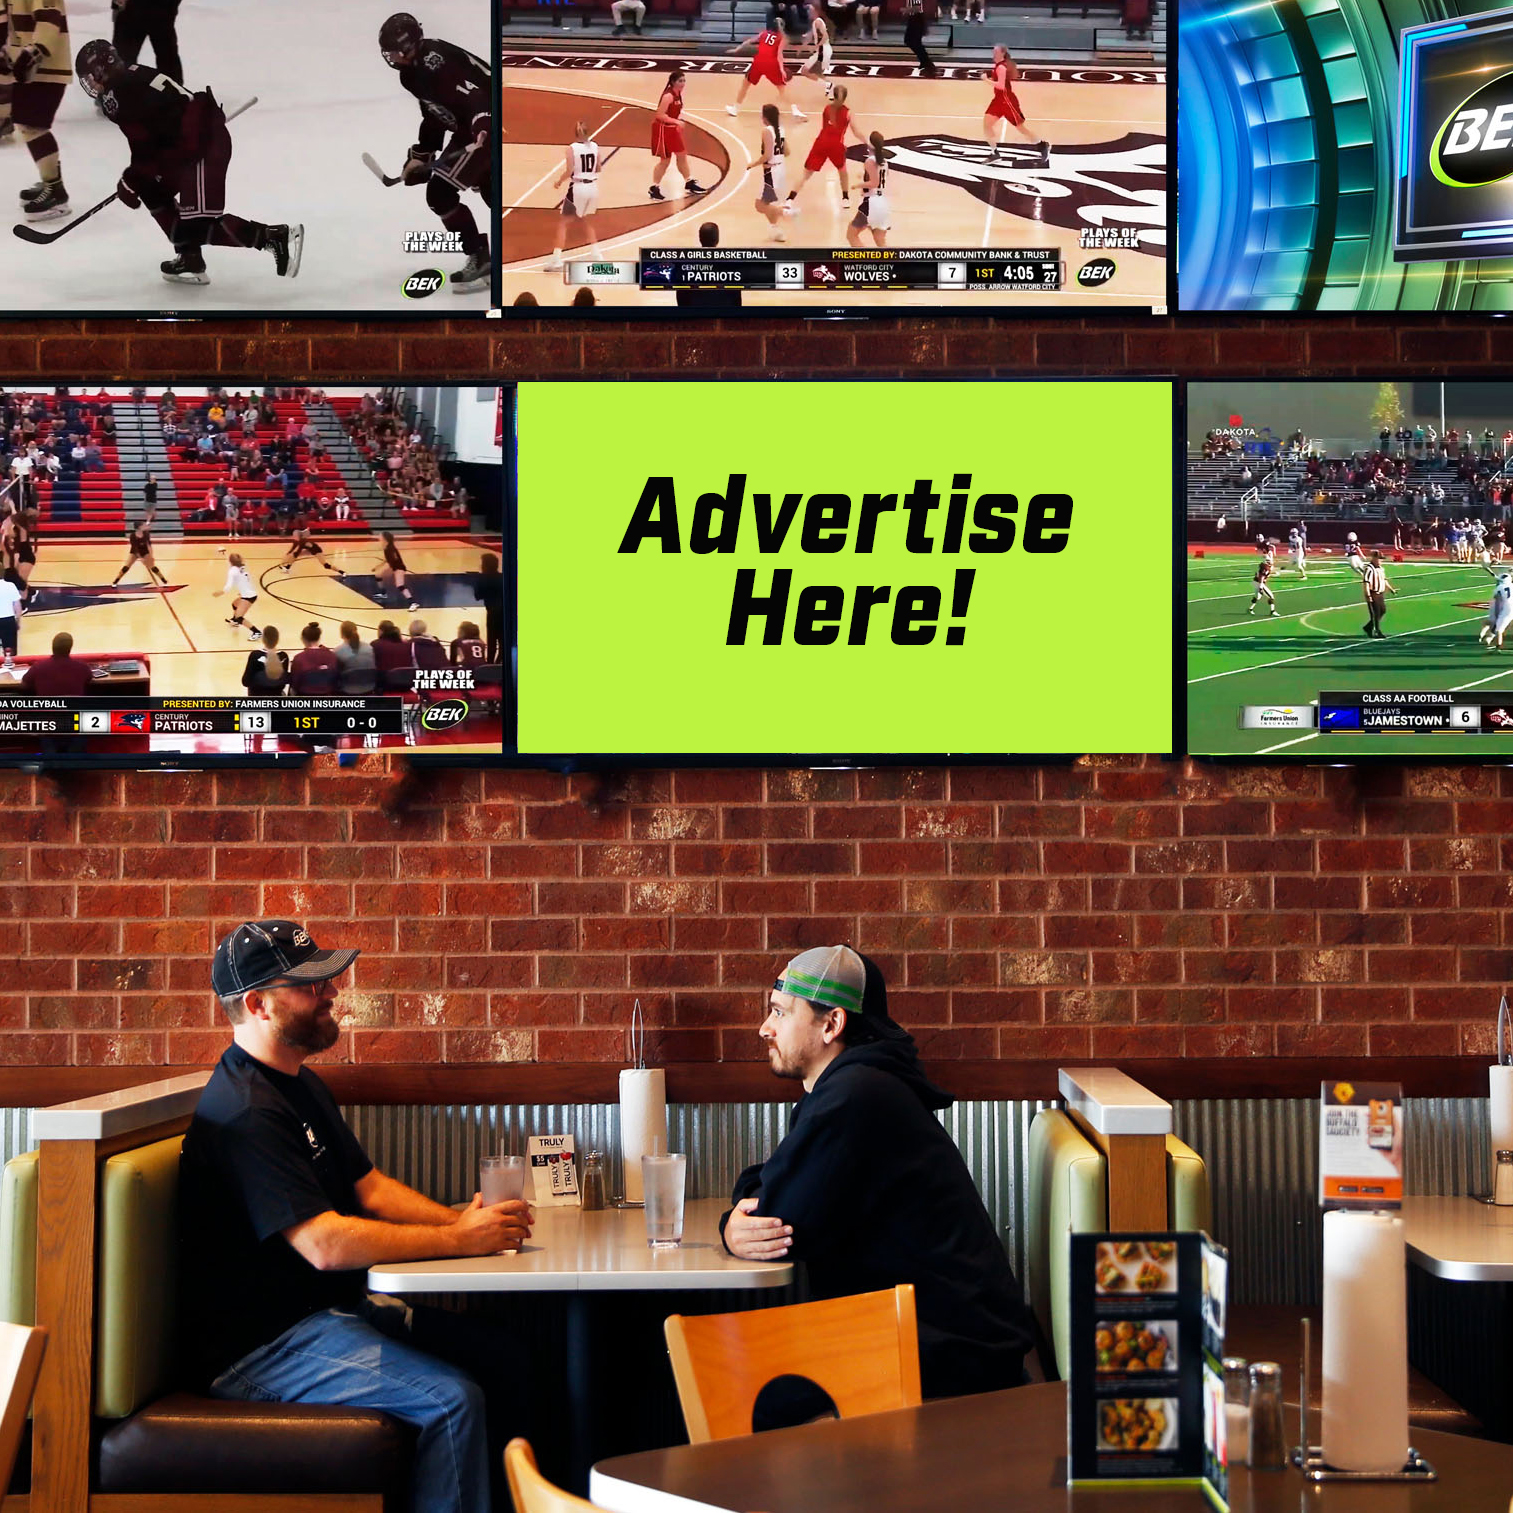 """Advertise Here!"" Shown on BEK TV screen with BEK TV Broadcasting sports games previewing around it."